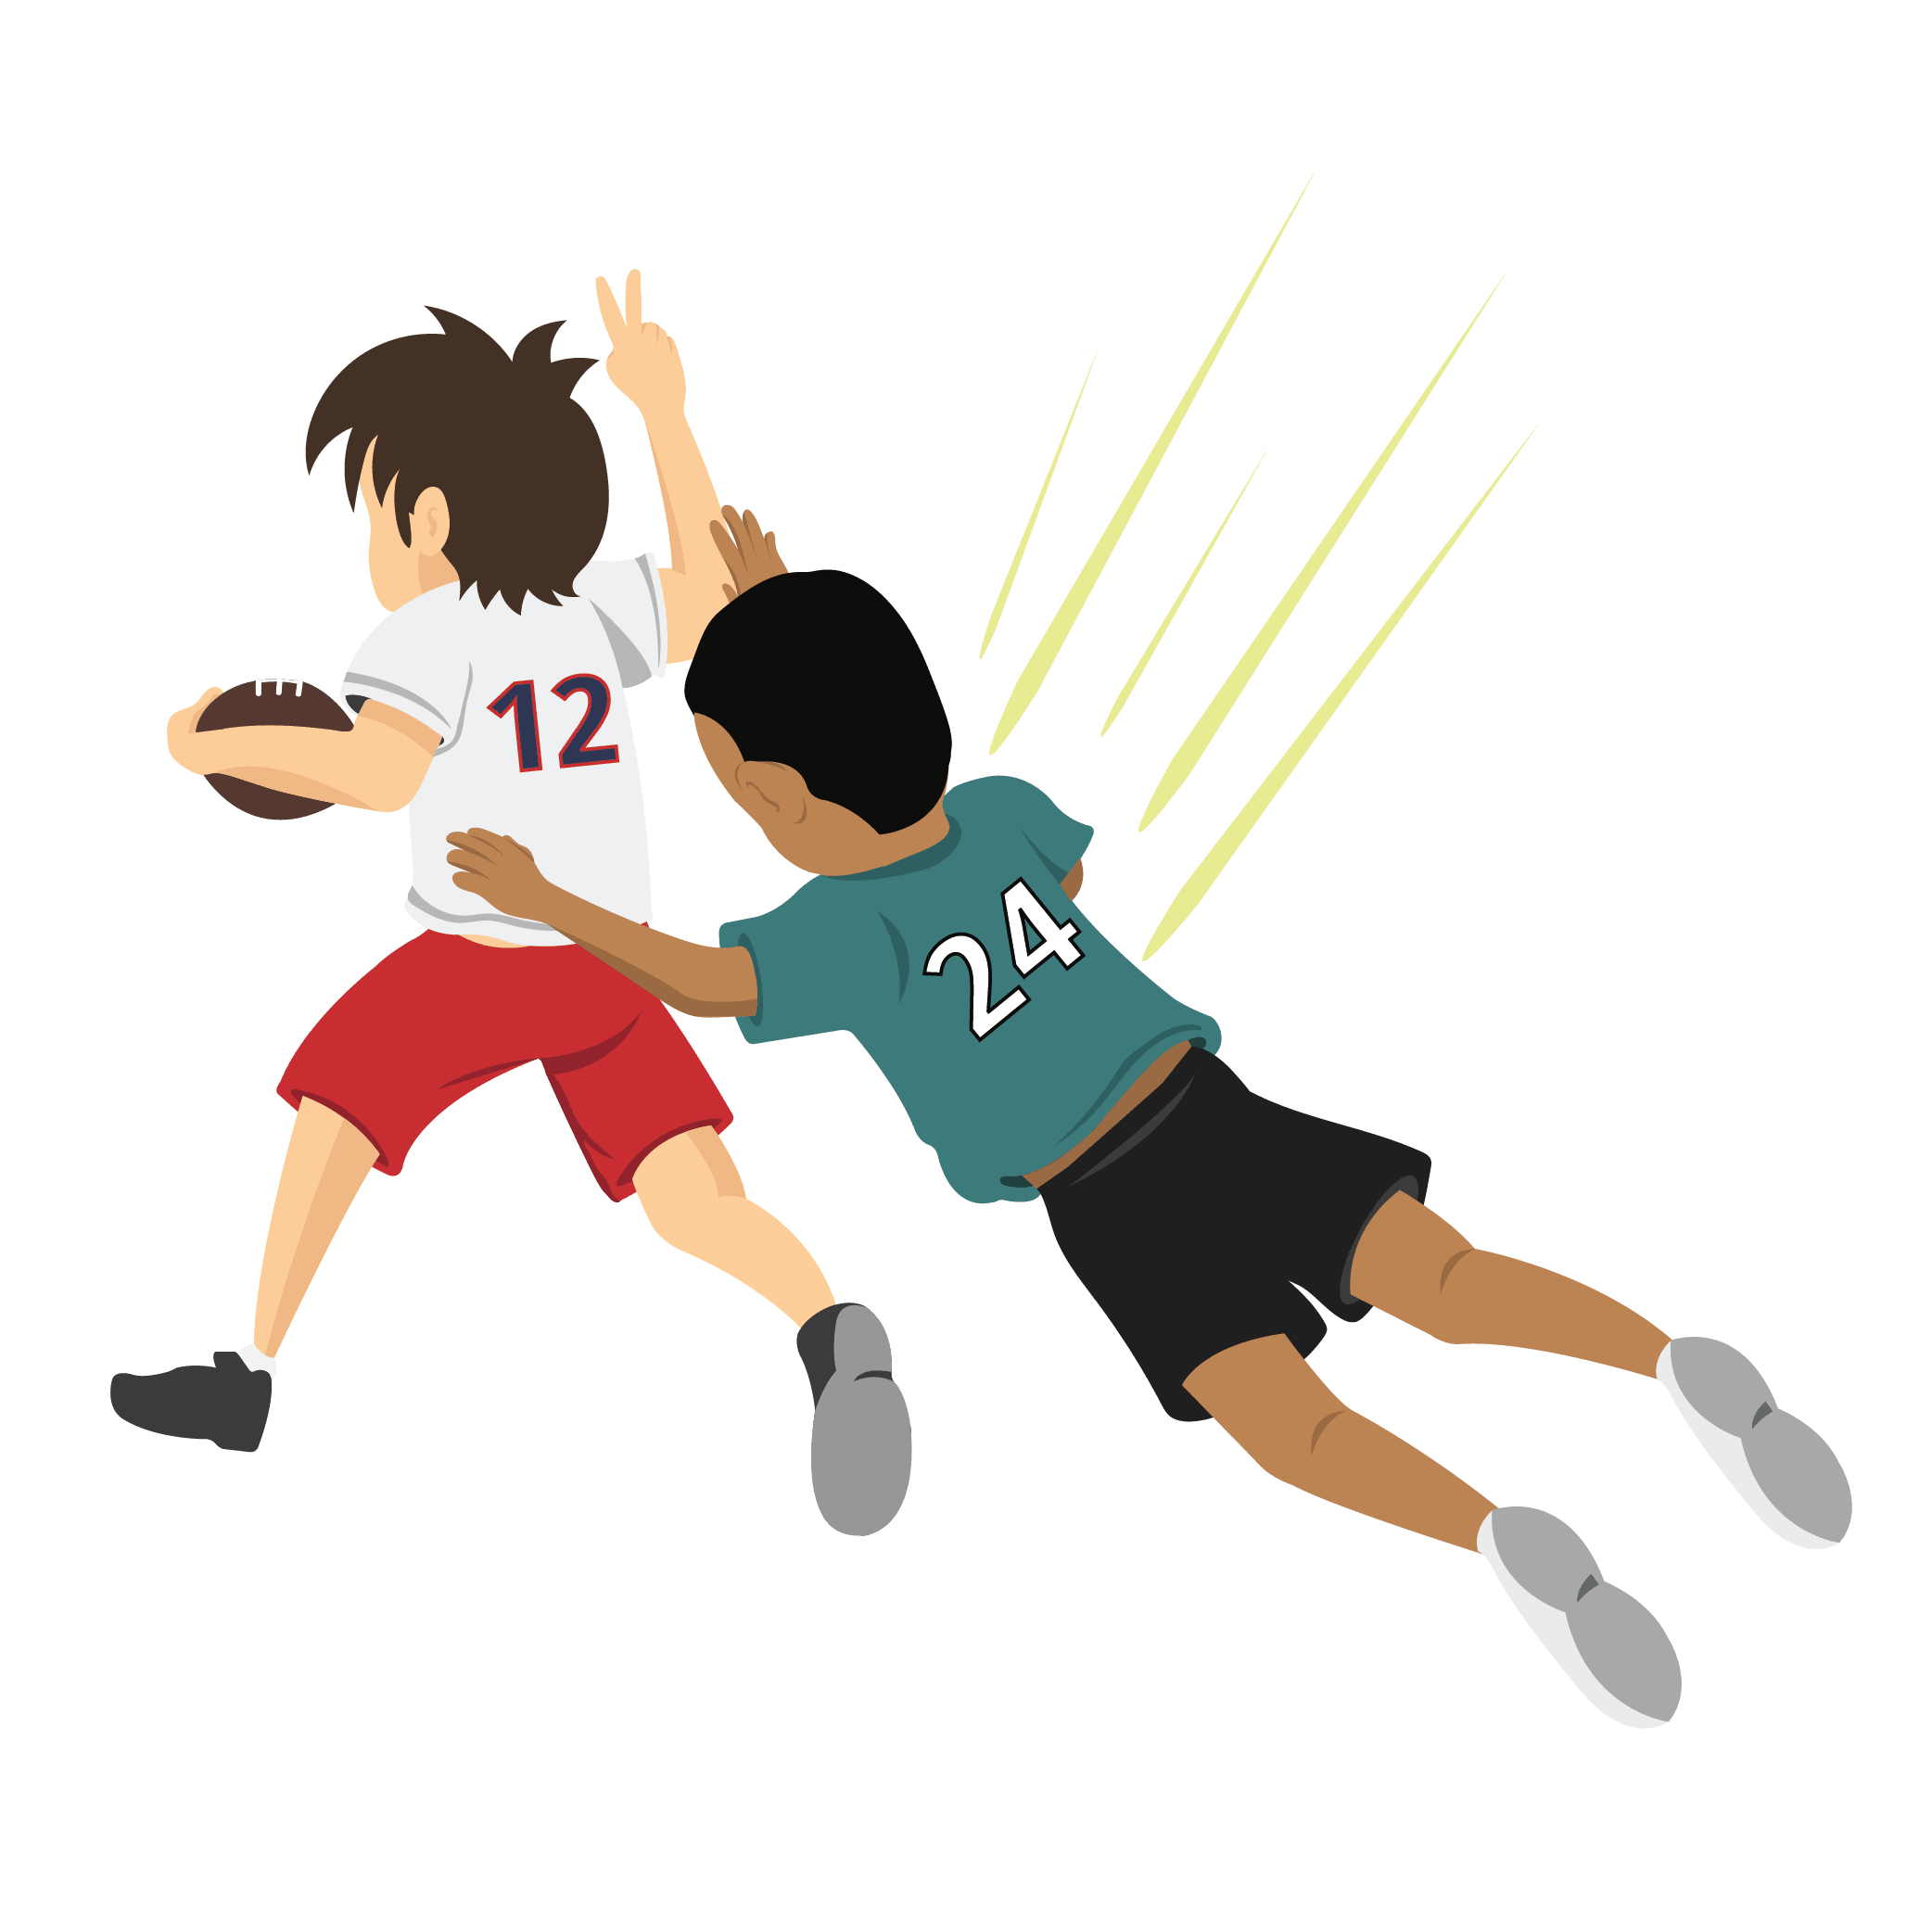 Two animated children playing football when one suffers injury